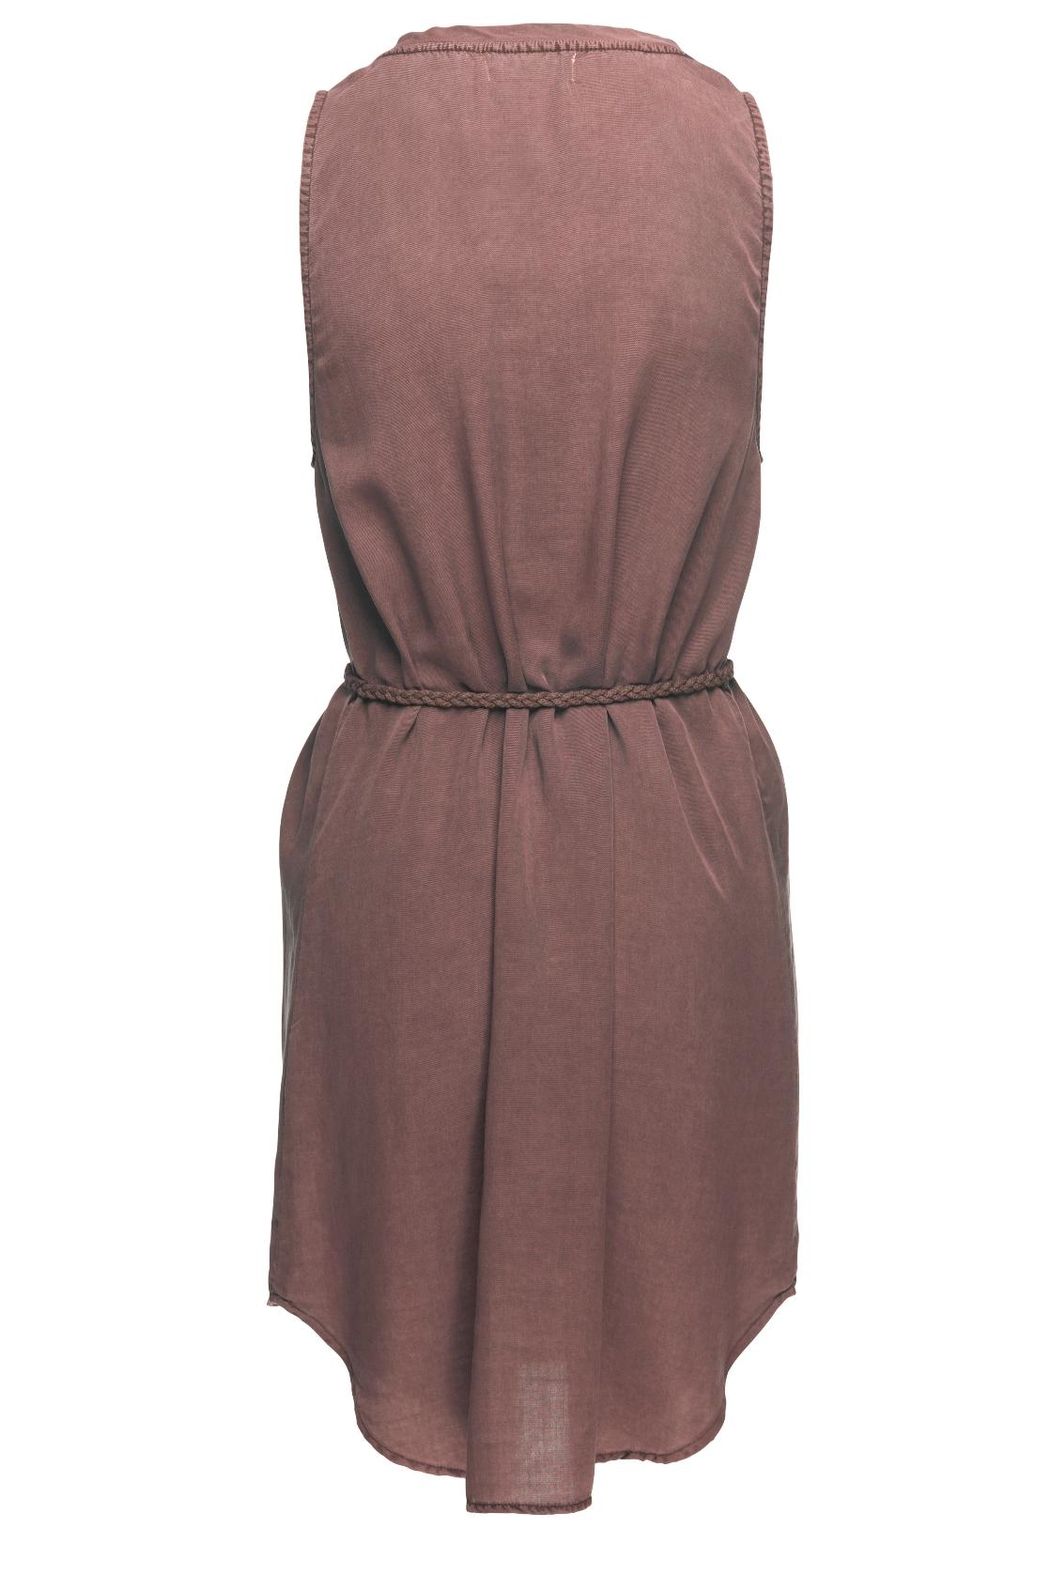 Bella Dahl Tie Tank Dress - Front Full Image